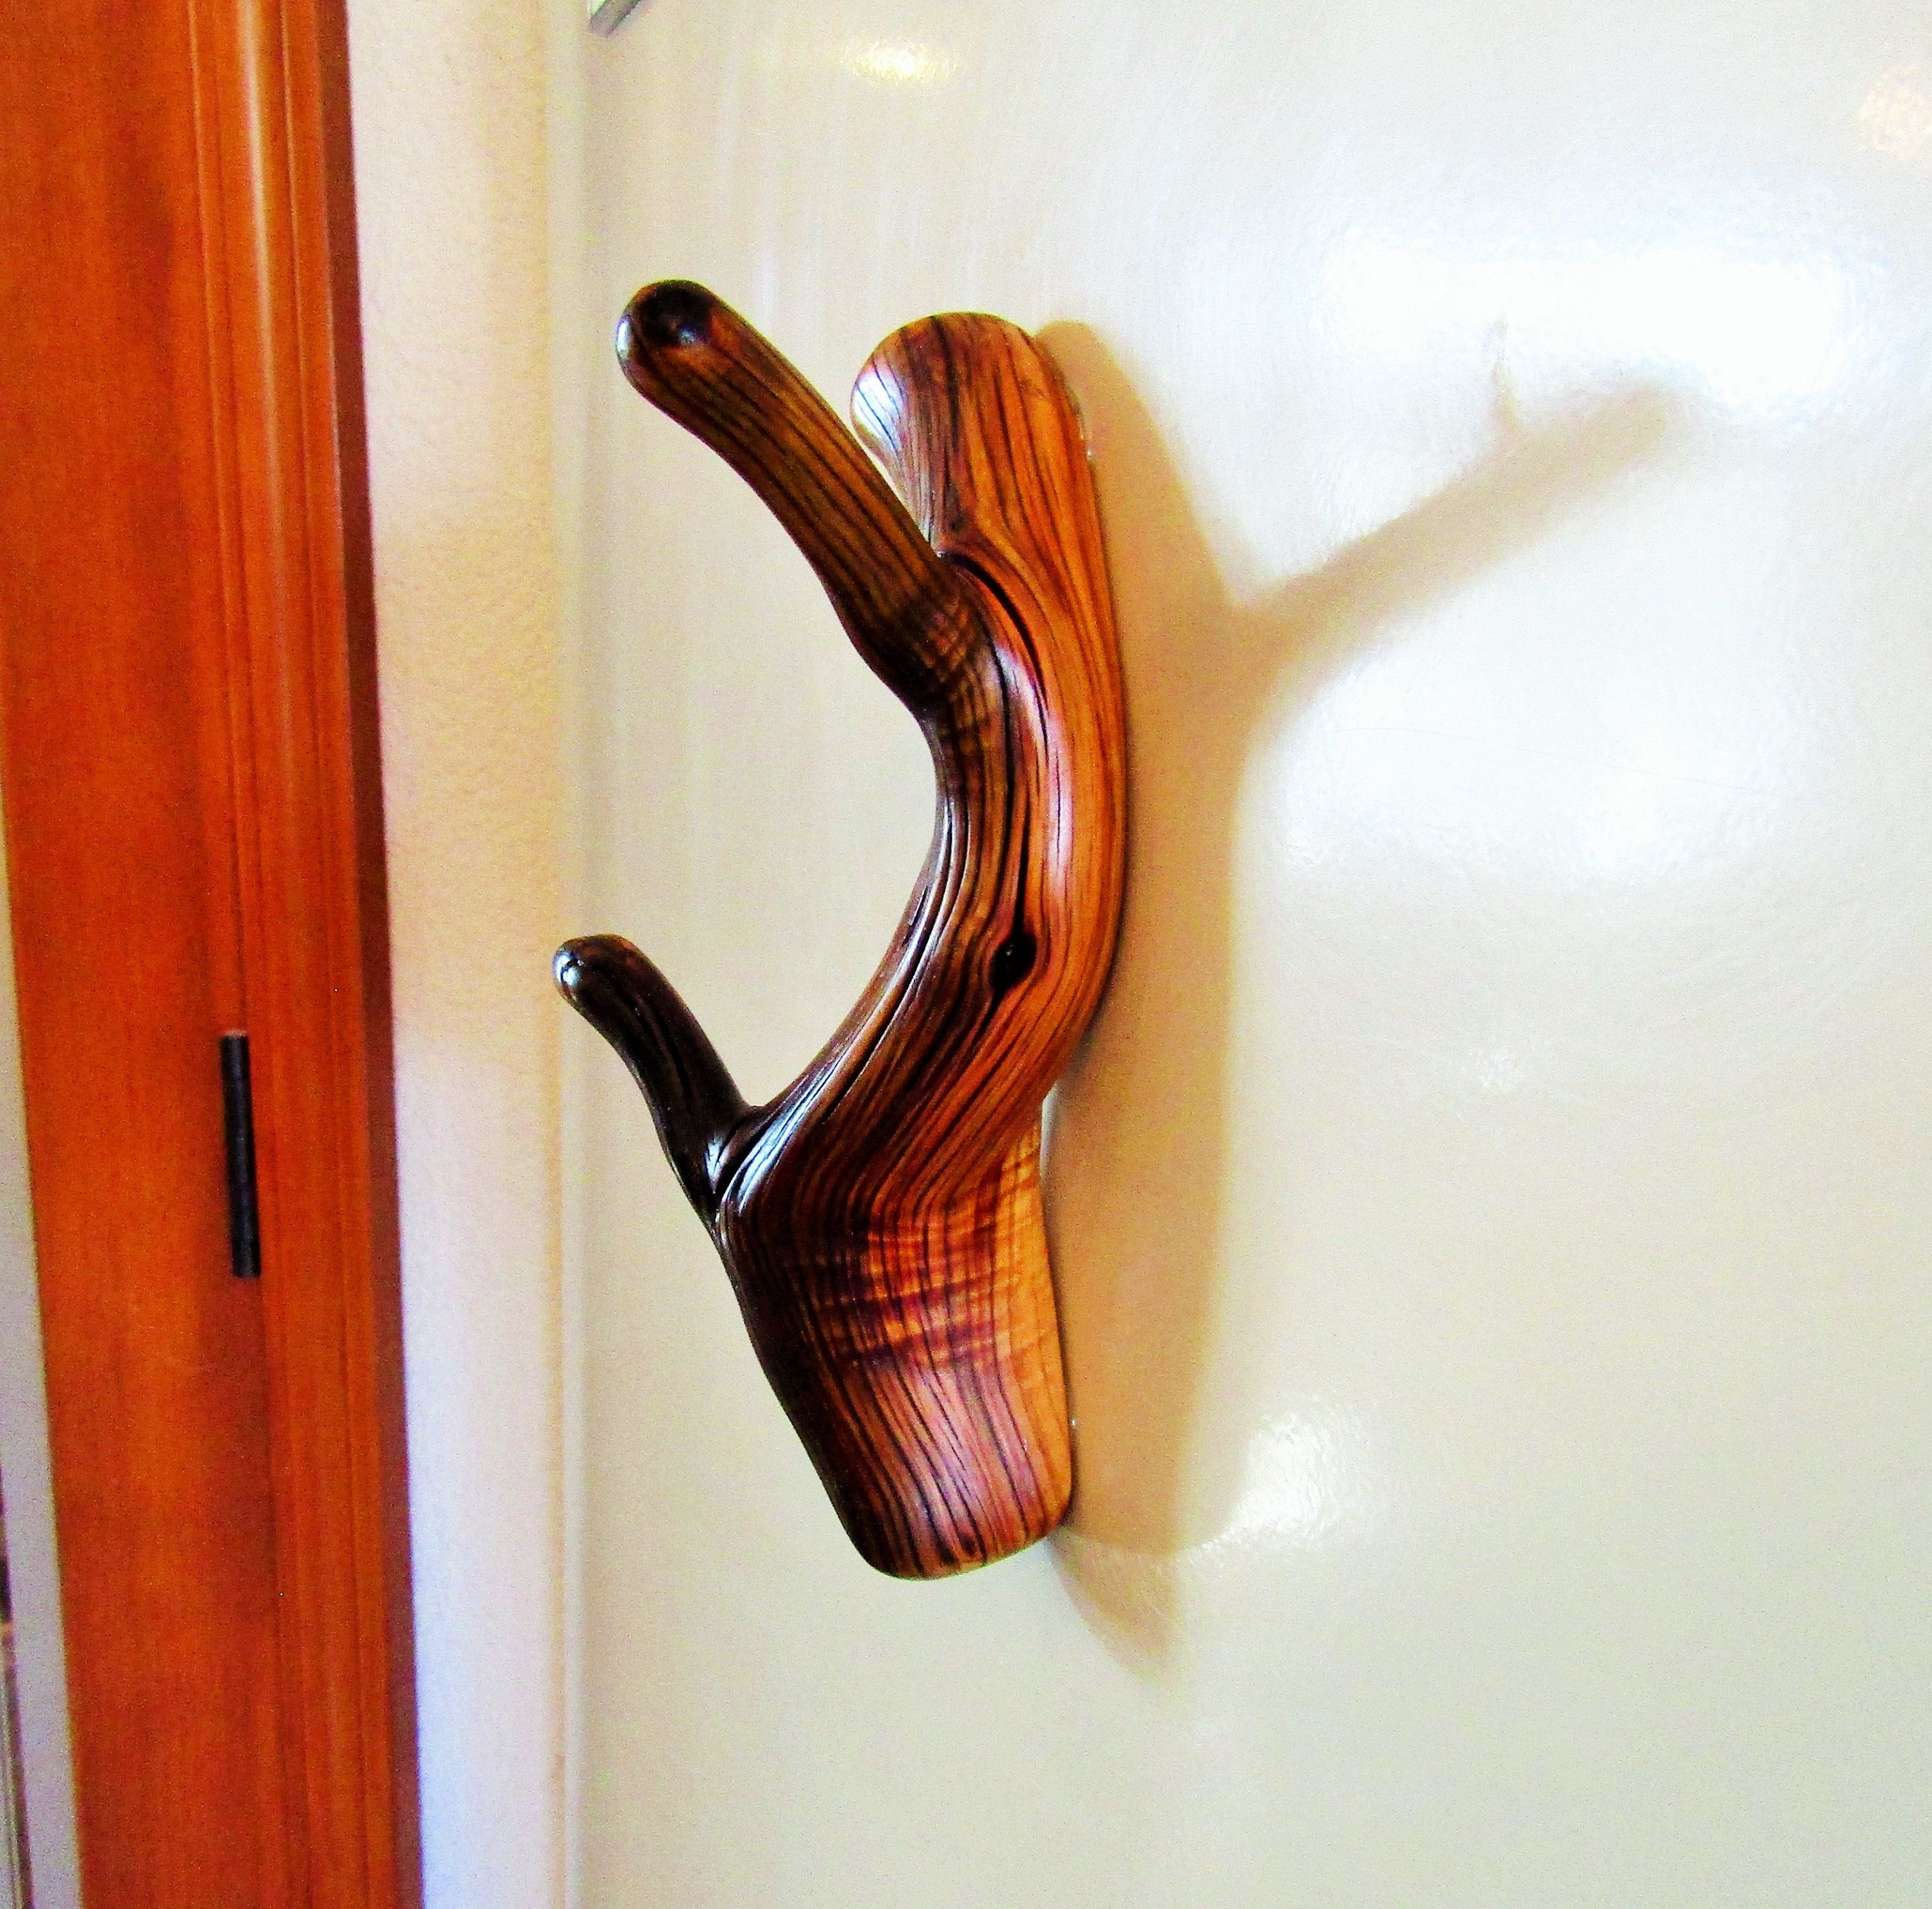 Juniper tree branch Refrigerator with double hooks